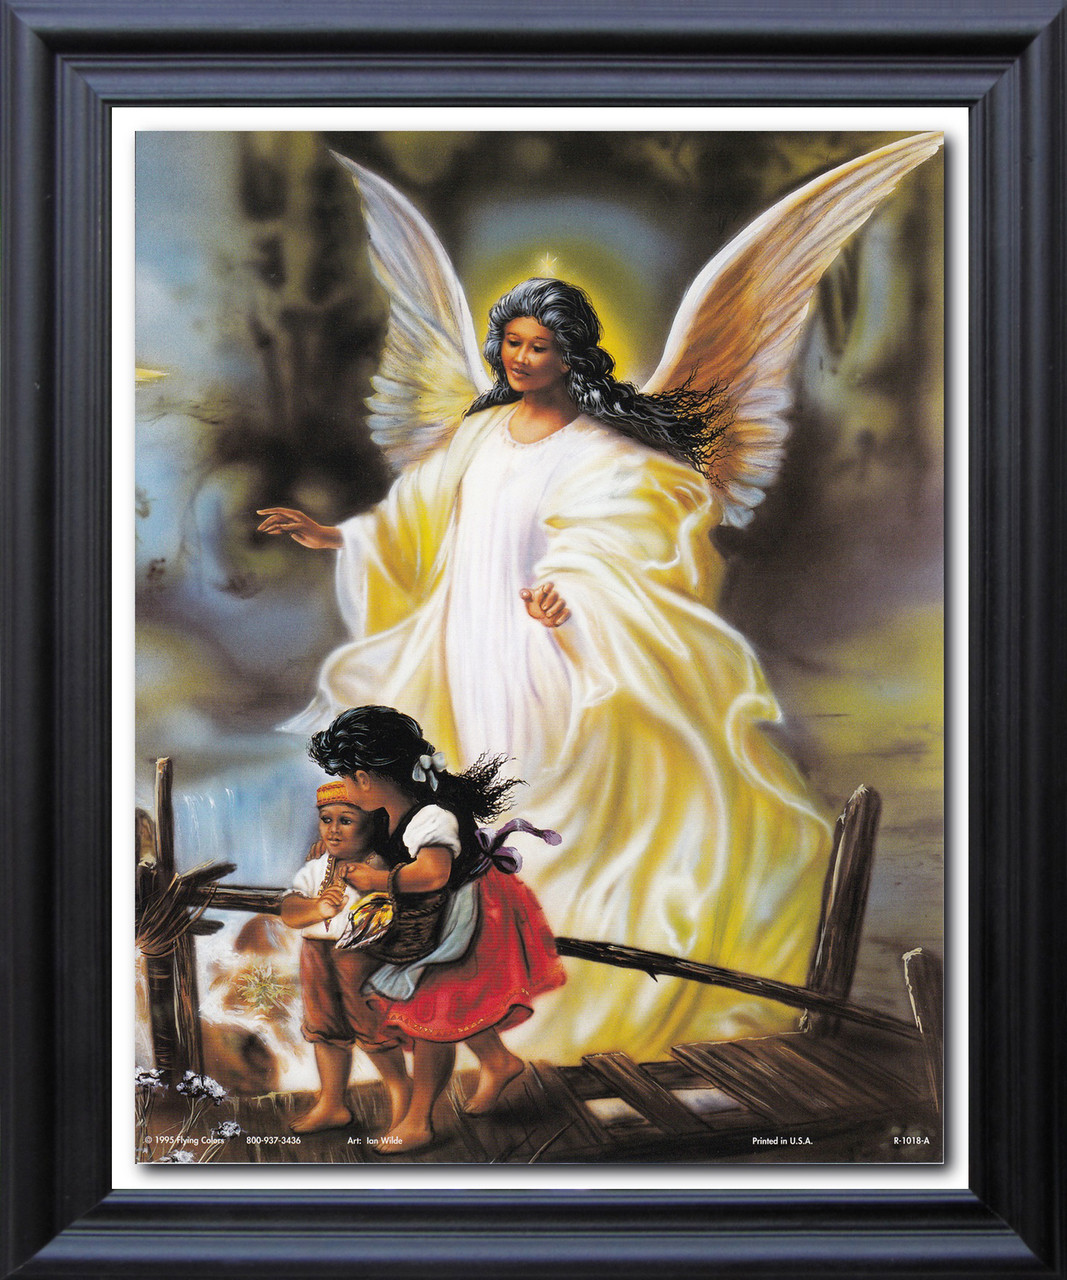 Guardian Angel With Children On Bridge Religious And Spiritual Wall Décor Black Framed Art Print Poster (19x23) & Guardian Angel With Children On Bridge Religious And Spiritual Wall ...